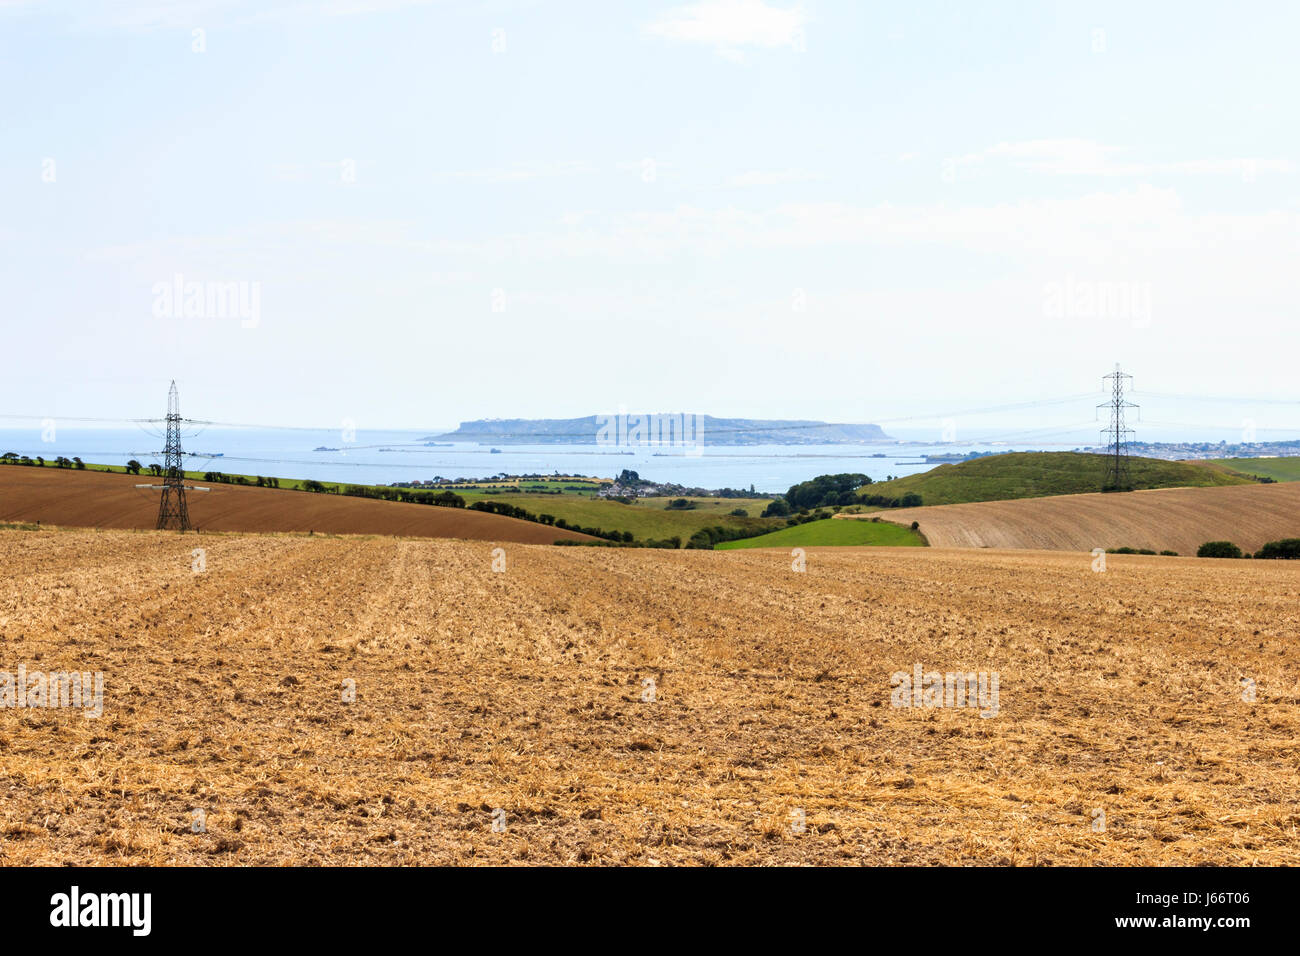 View across a harvested stubble crop field, the Isle of Portland in the distance, Dorset, UK Stock Photo